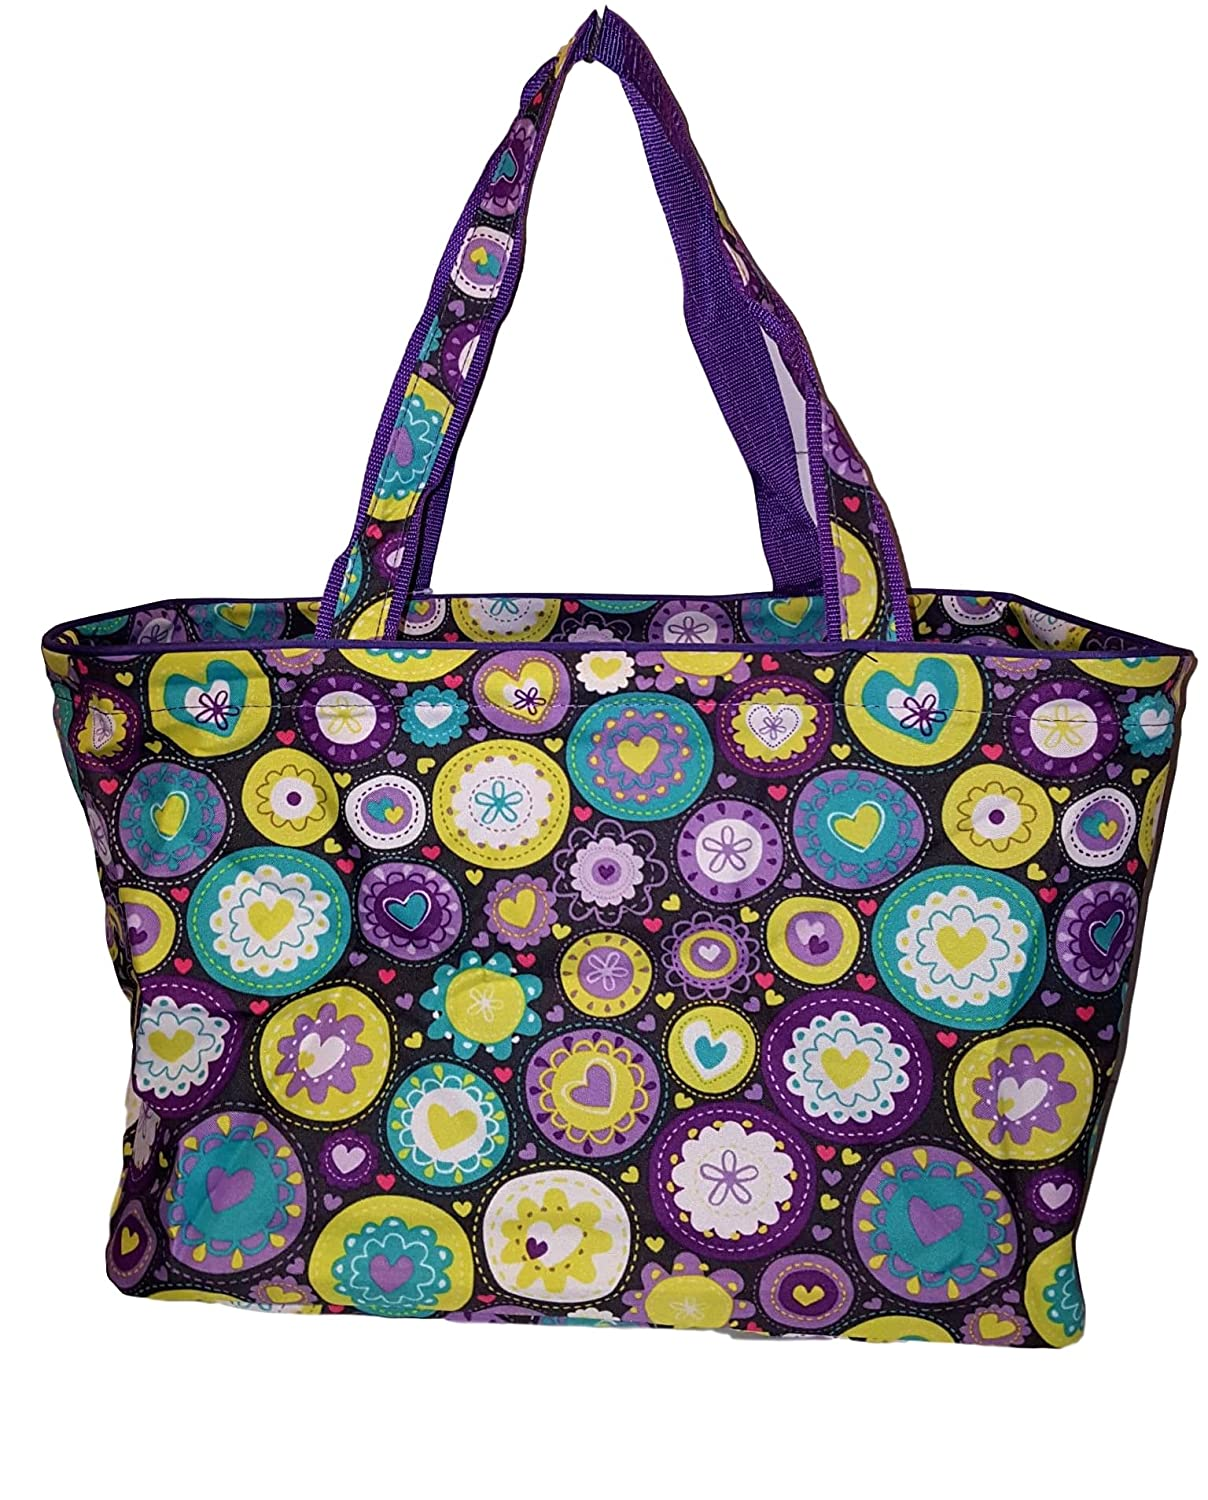 101 BEACH Ultimate Tailgate Tote Bag Bicycle Print - Embroidered Name Personalization Available